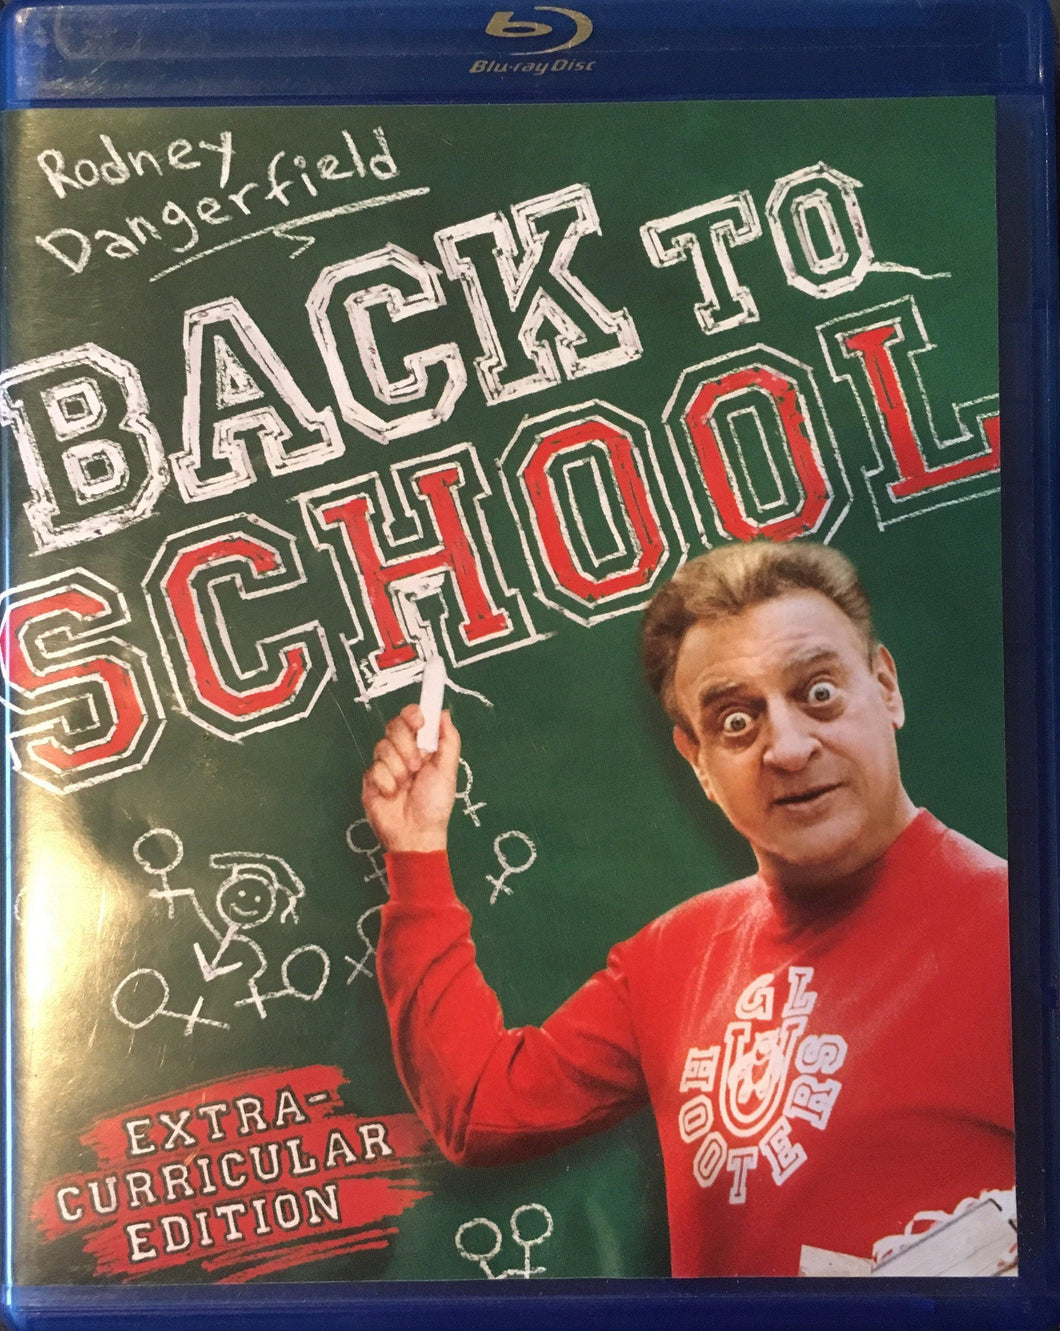 Back To School BluRay (Rare OOP)